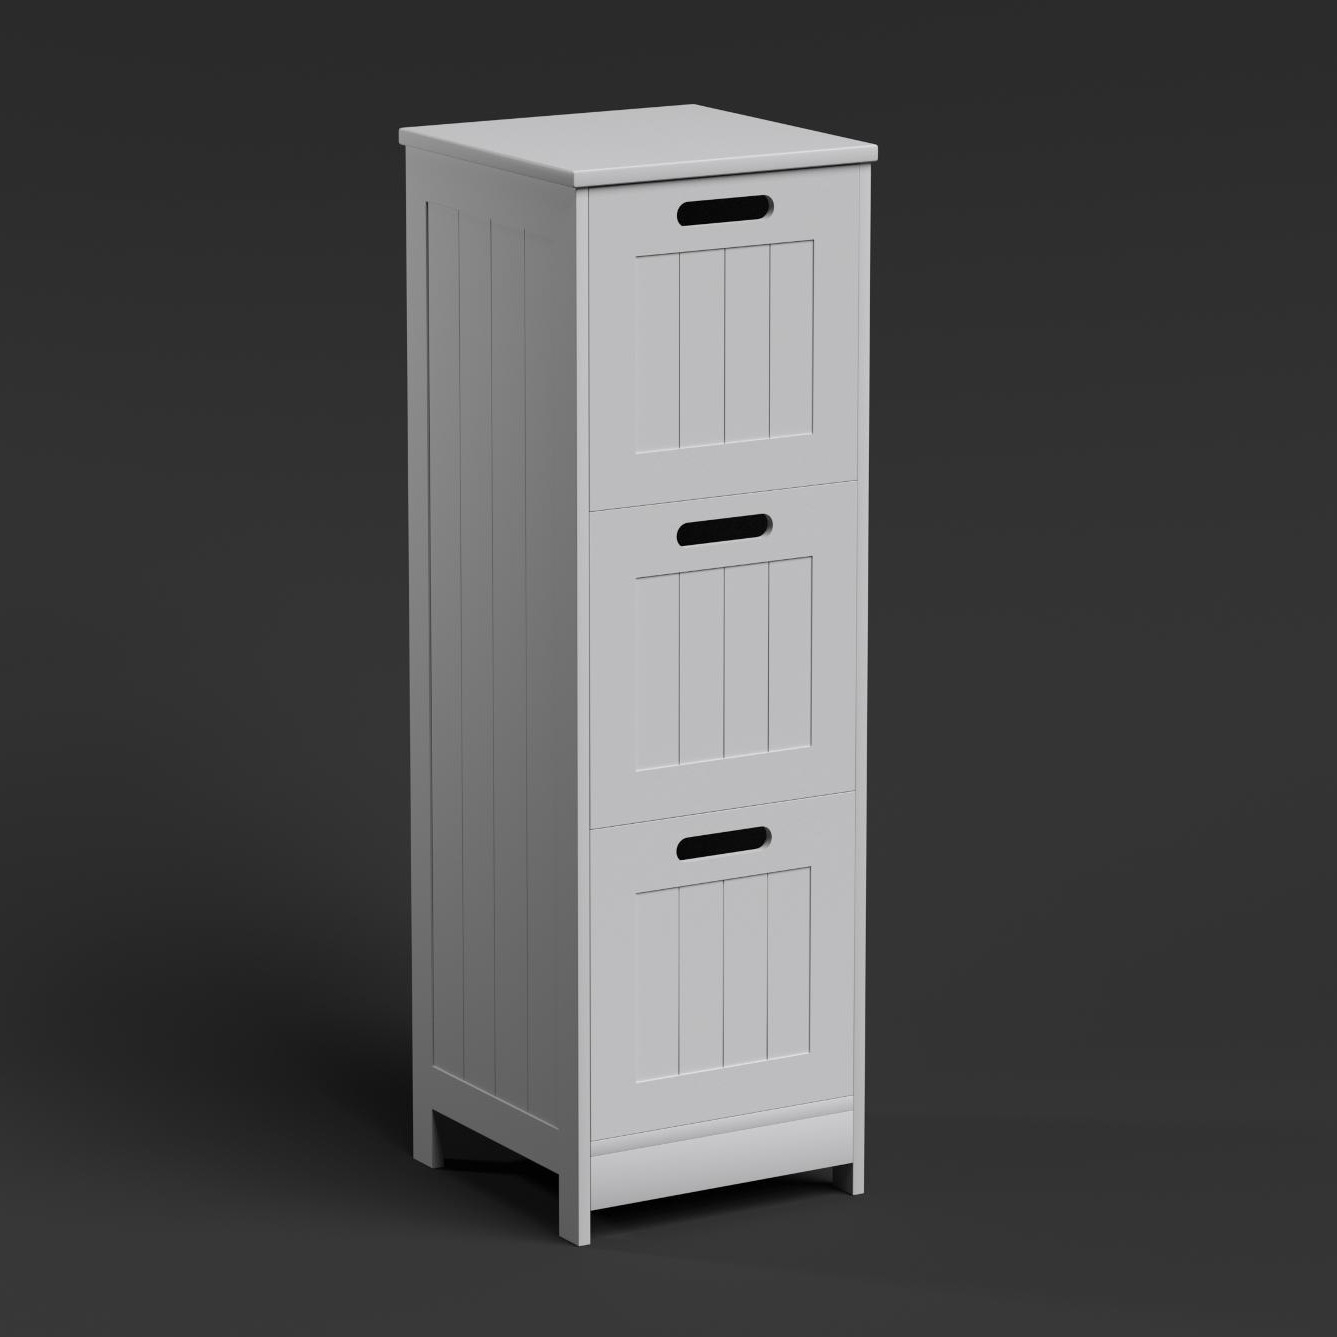 Permalink to Free Standing Bathroom Cabinets Wickes